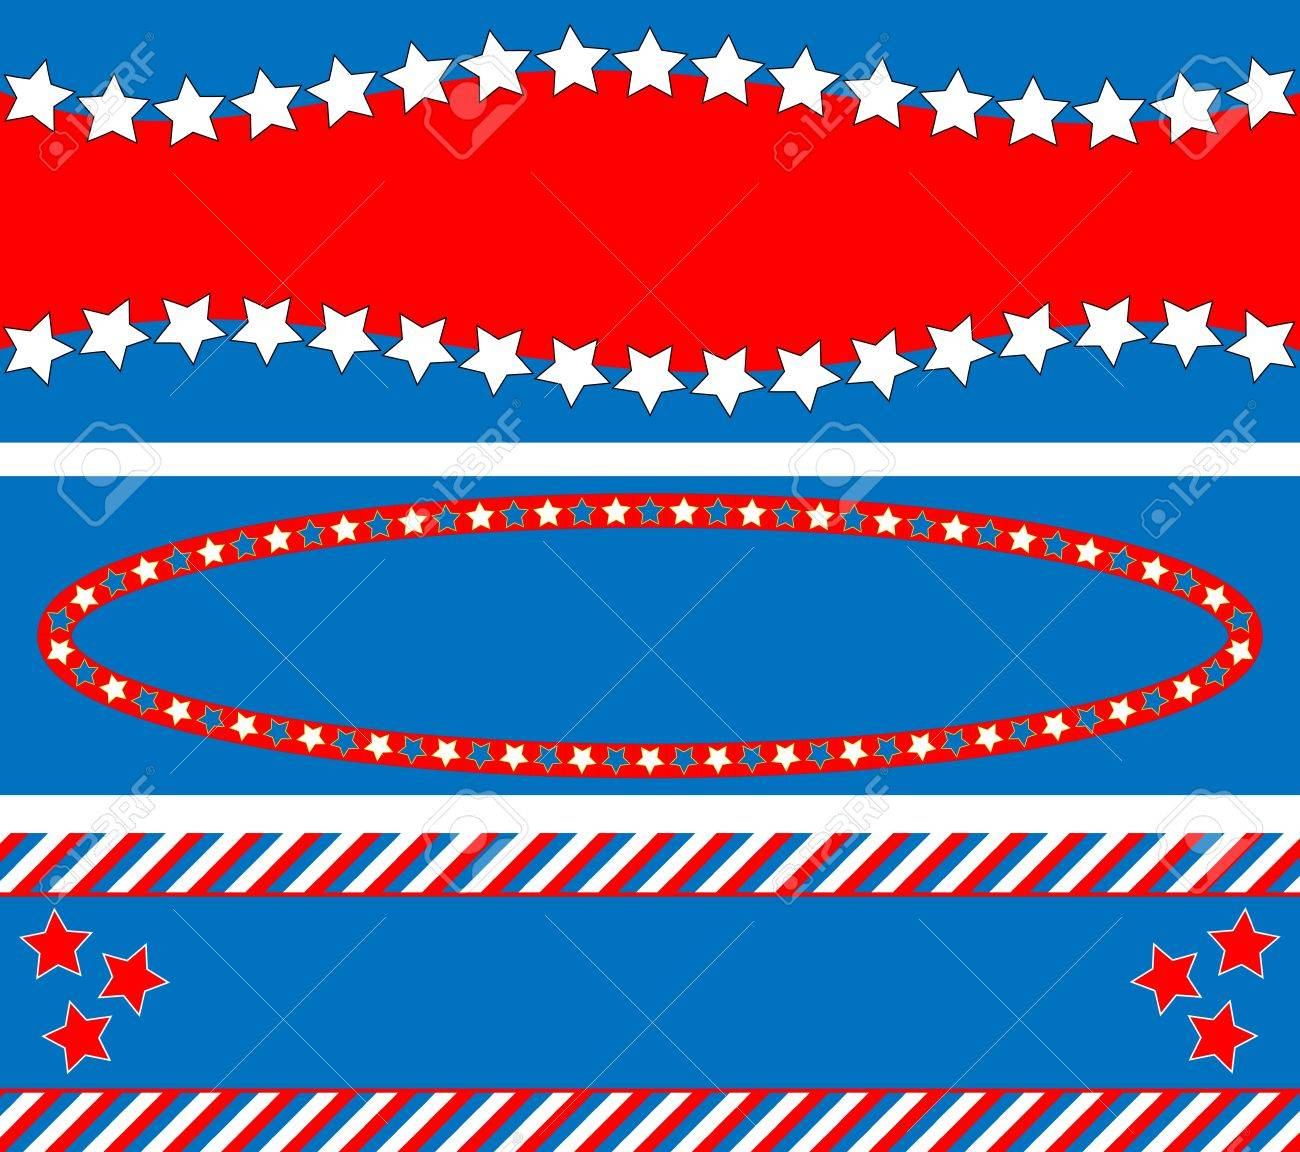 3 Red White And Blue Patriotic Frames Or Border Backgrounds